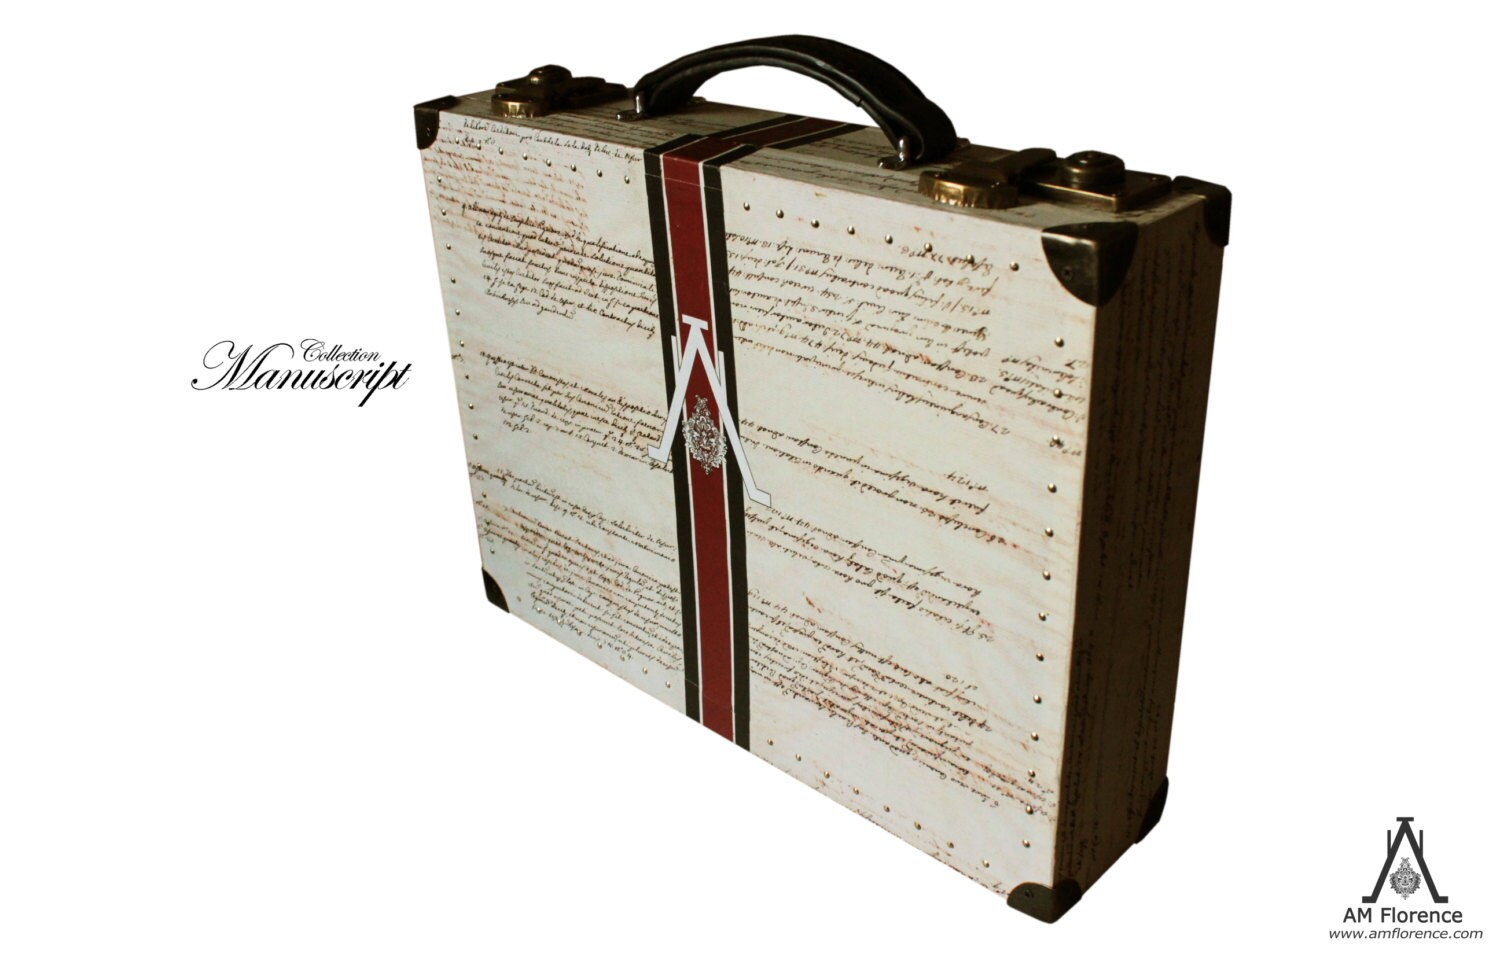 Luxury Briefcase Hardsided Luggage Vintage style Business Suitcase unique furniture storage home decor Mosshart 11